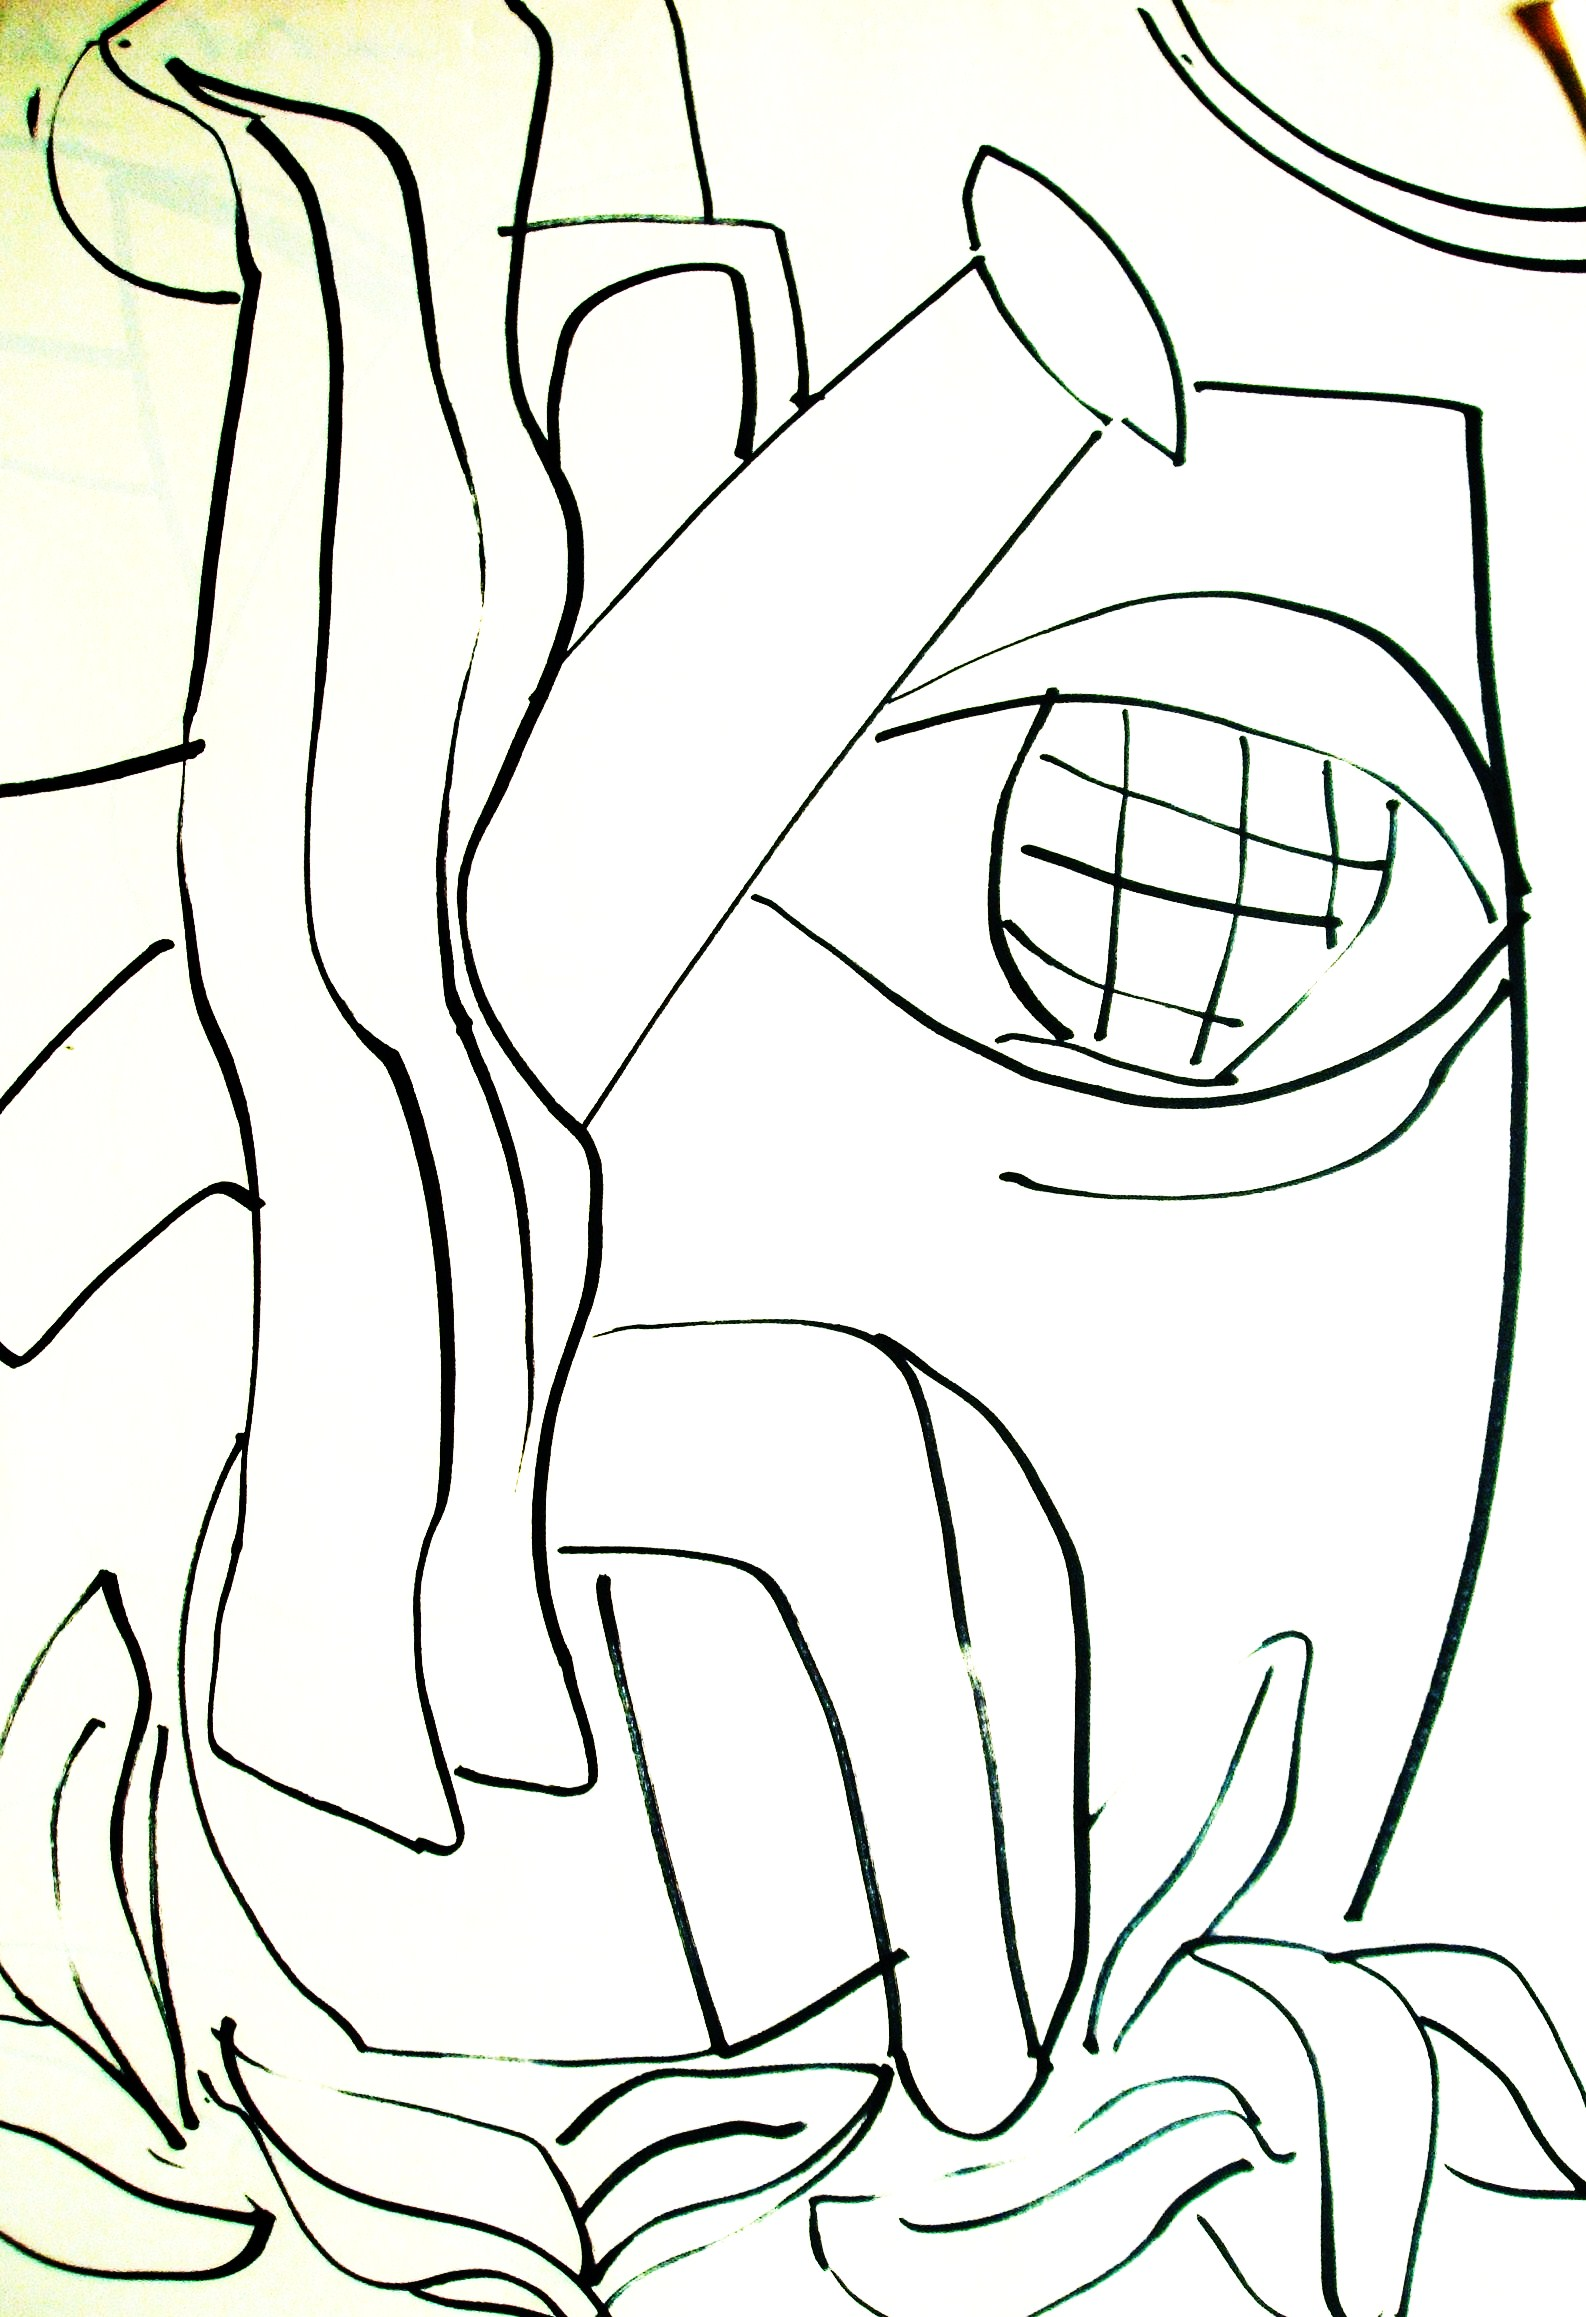 1586x2317 Line Drawings With A Fat Marker Pen 2010 Headland